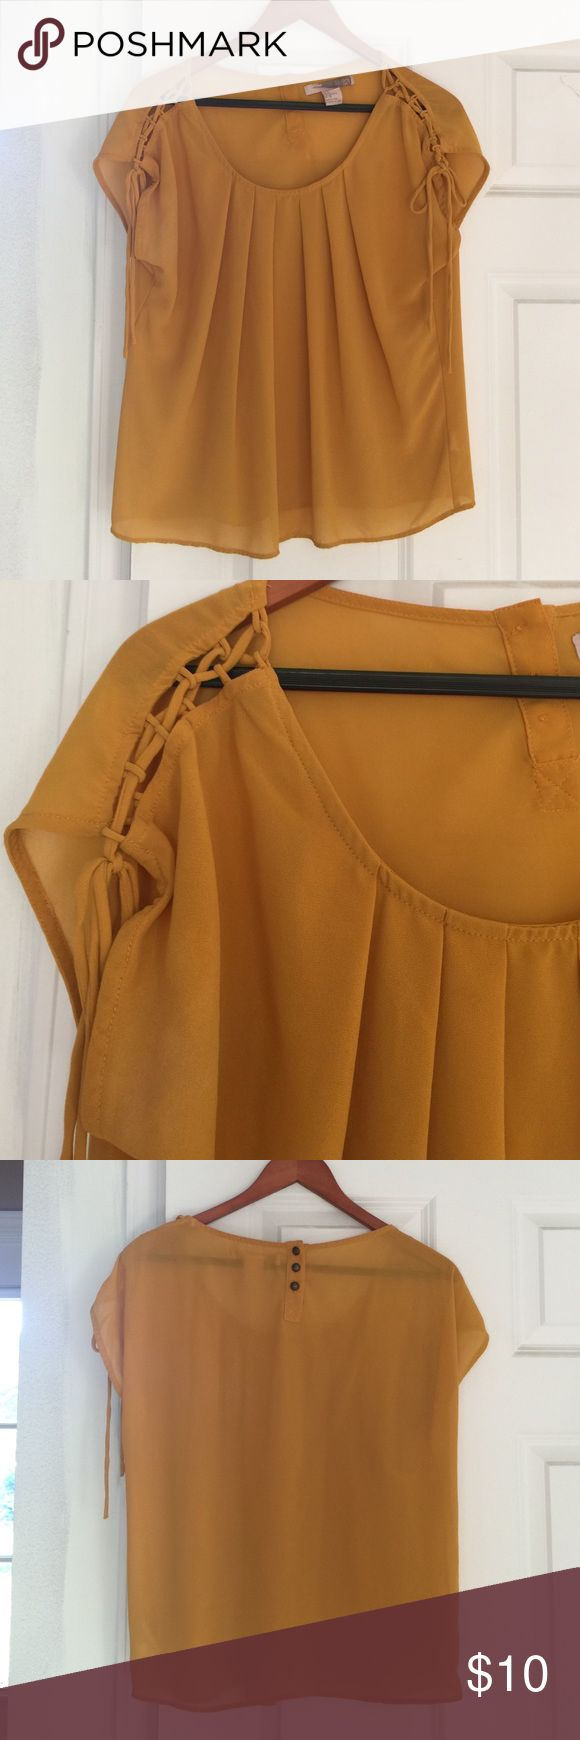 Dark mustard yellow lady's shirt Dark mustard yellow lady's shirt. Featuring pleated front, corseted sleeves and thee buttons on back nape of neck. It's the same exact color as depicted below. Tops Tees - Short Sleeve